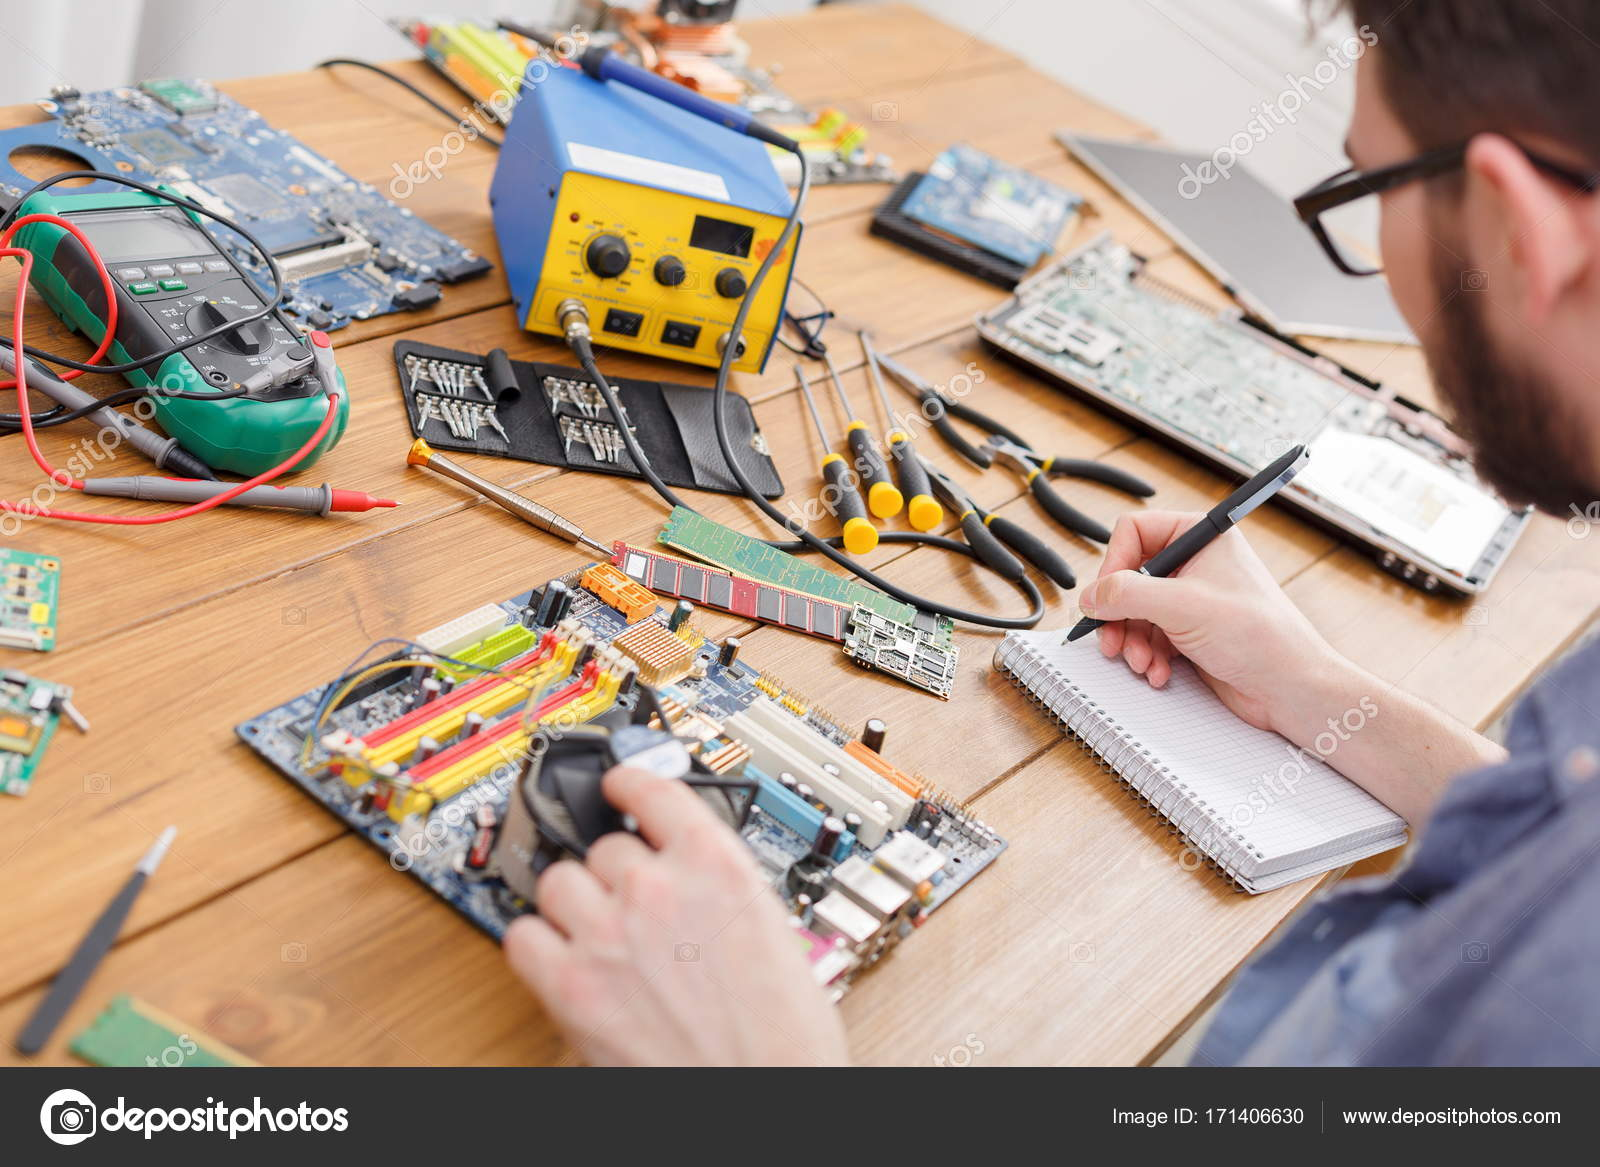 Electronic Circuit Board Inspecting In Repair Shop Stock Photo